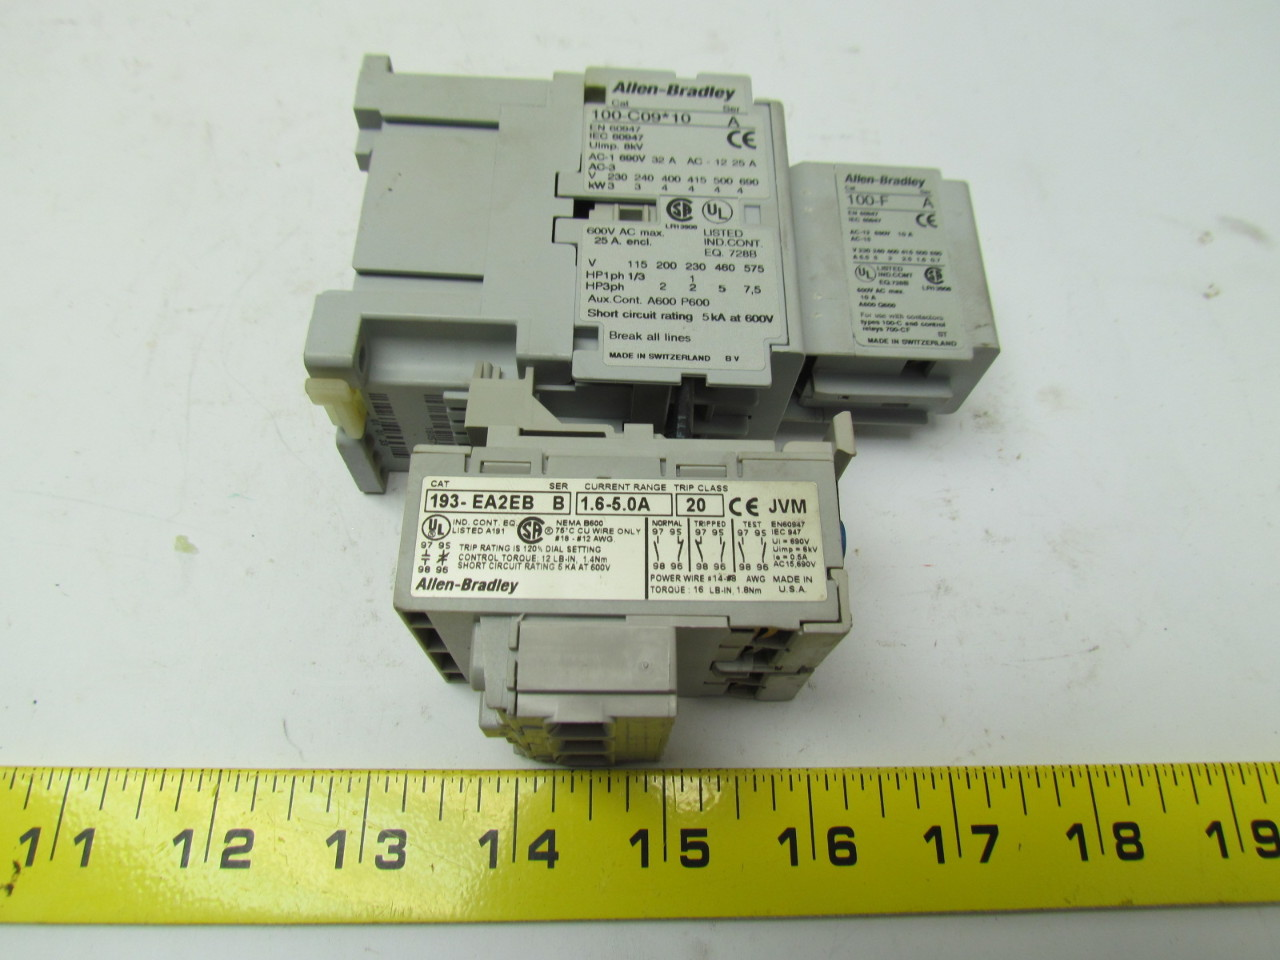 contactor and overload wiring diagram single phase boat water system allen bradley 100 c09 10 3 pole w 193 ea2eb